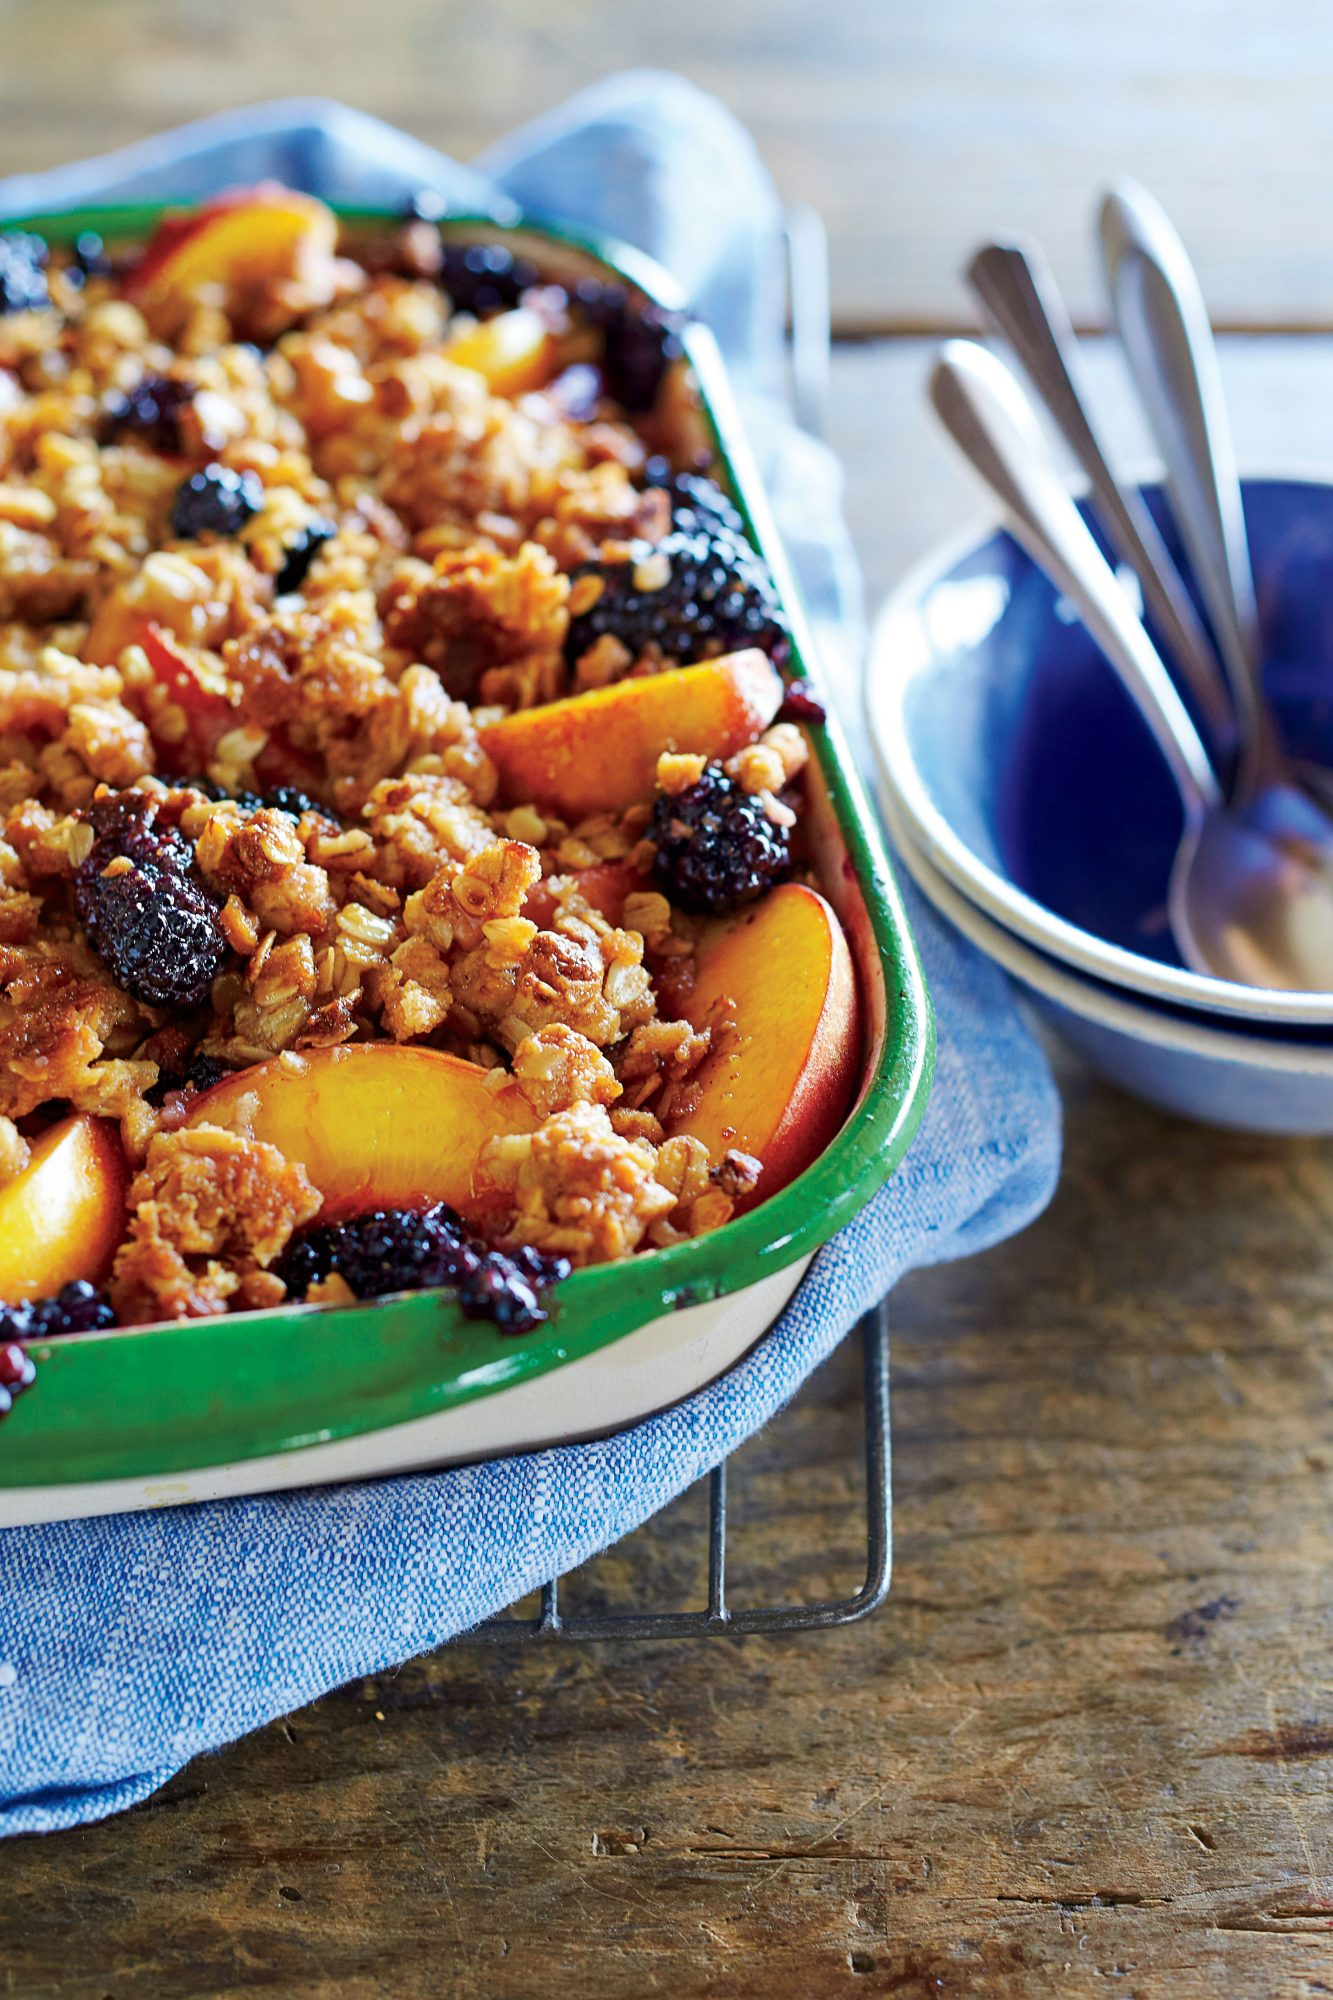 6 Delicious Ways to Use Up Mealy, Not-Great Peaches